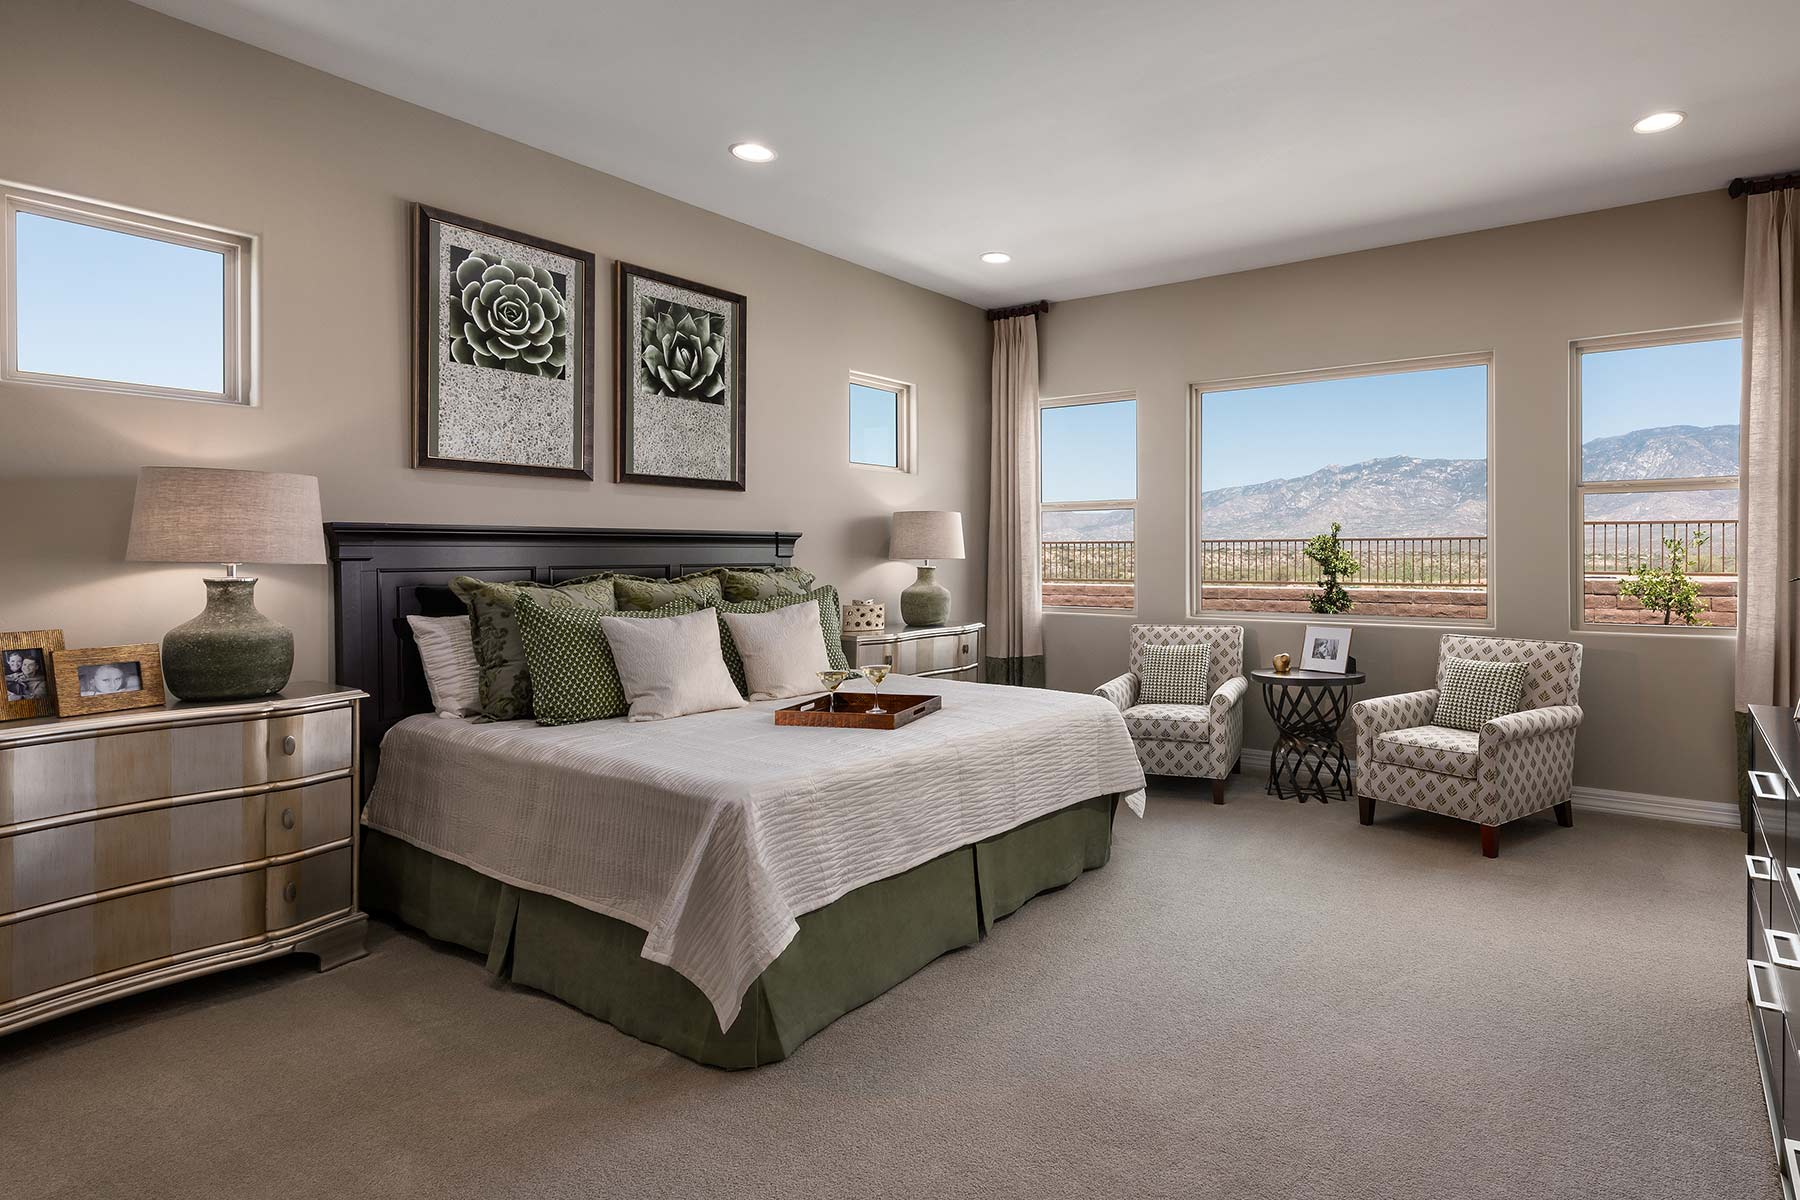 Vale Plan  at Alterra at Vistoso Trails in Oro Valley Arizona by Mattamy Homes